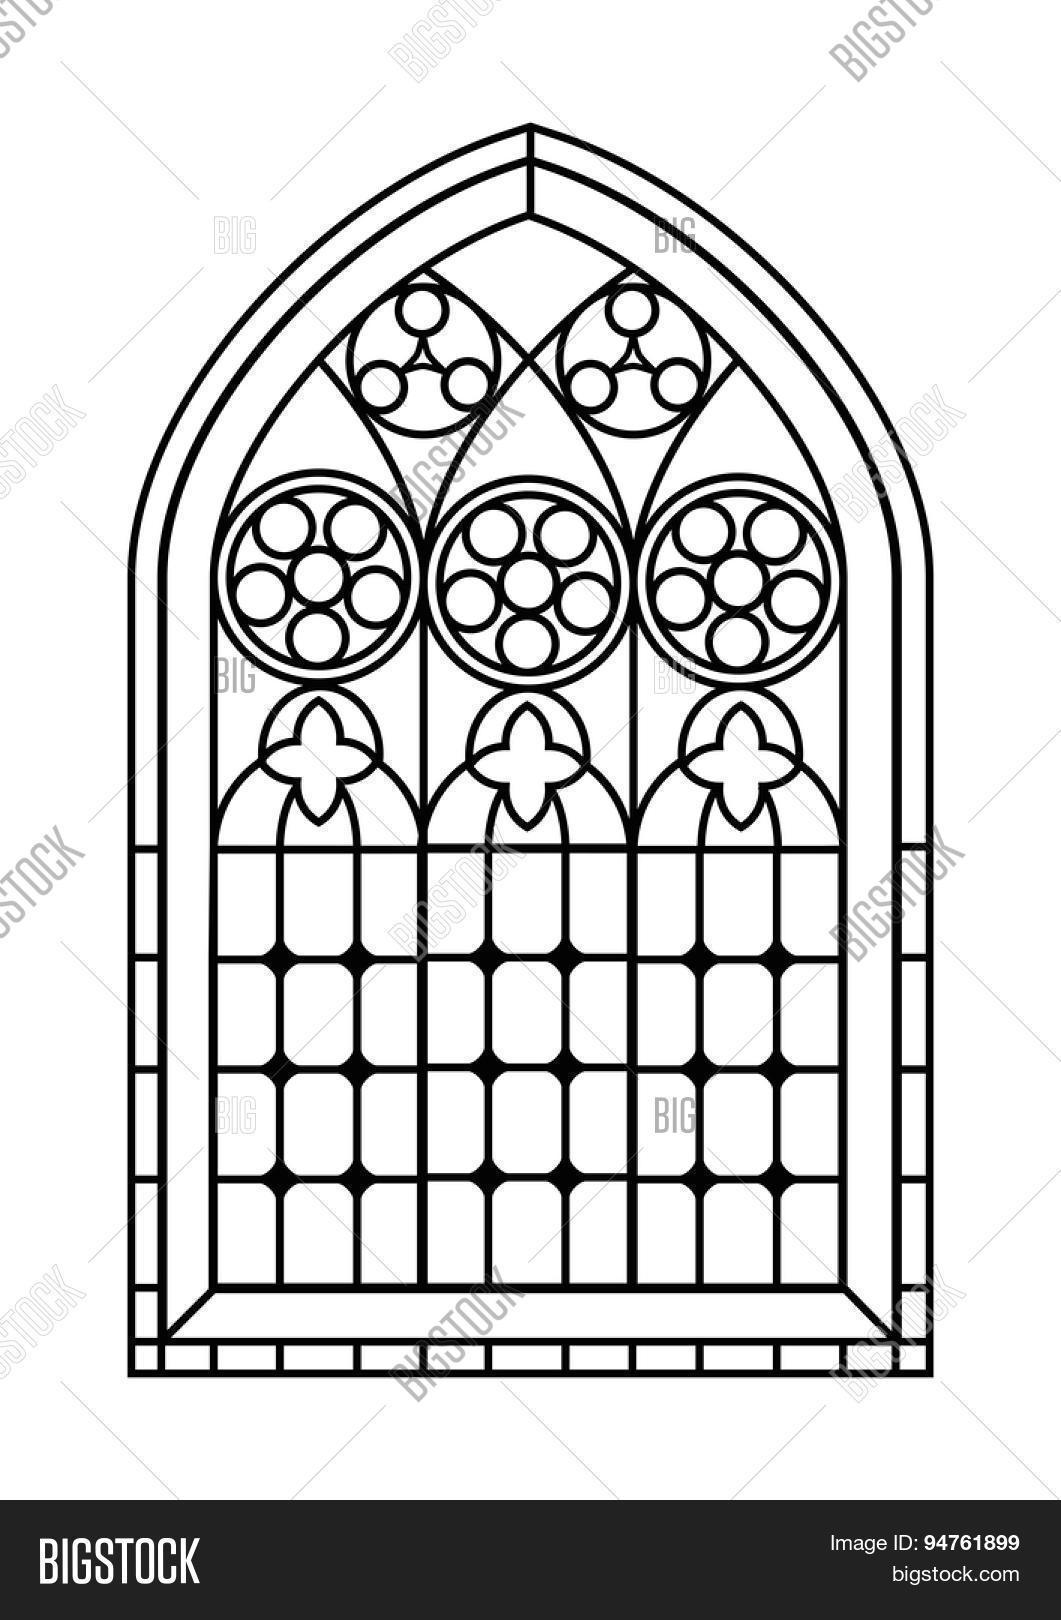 Gothic Style Stained Glass Window Vector & Photo | Bigstock